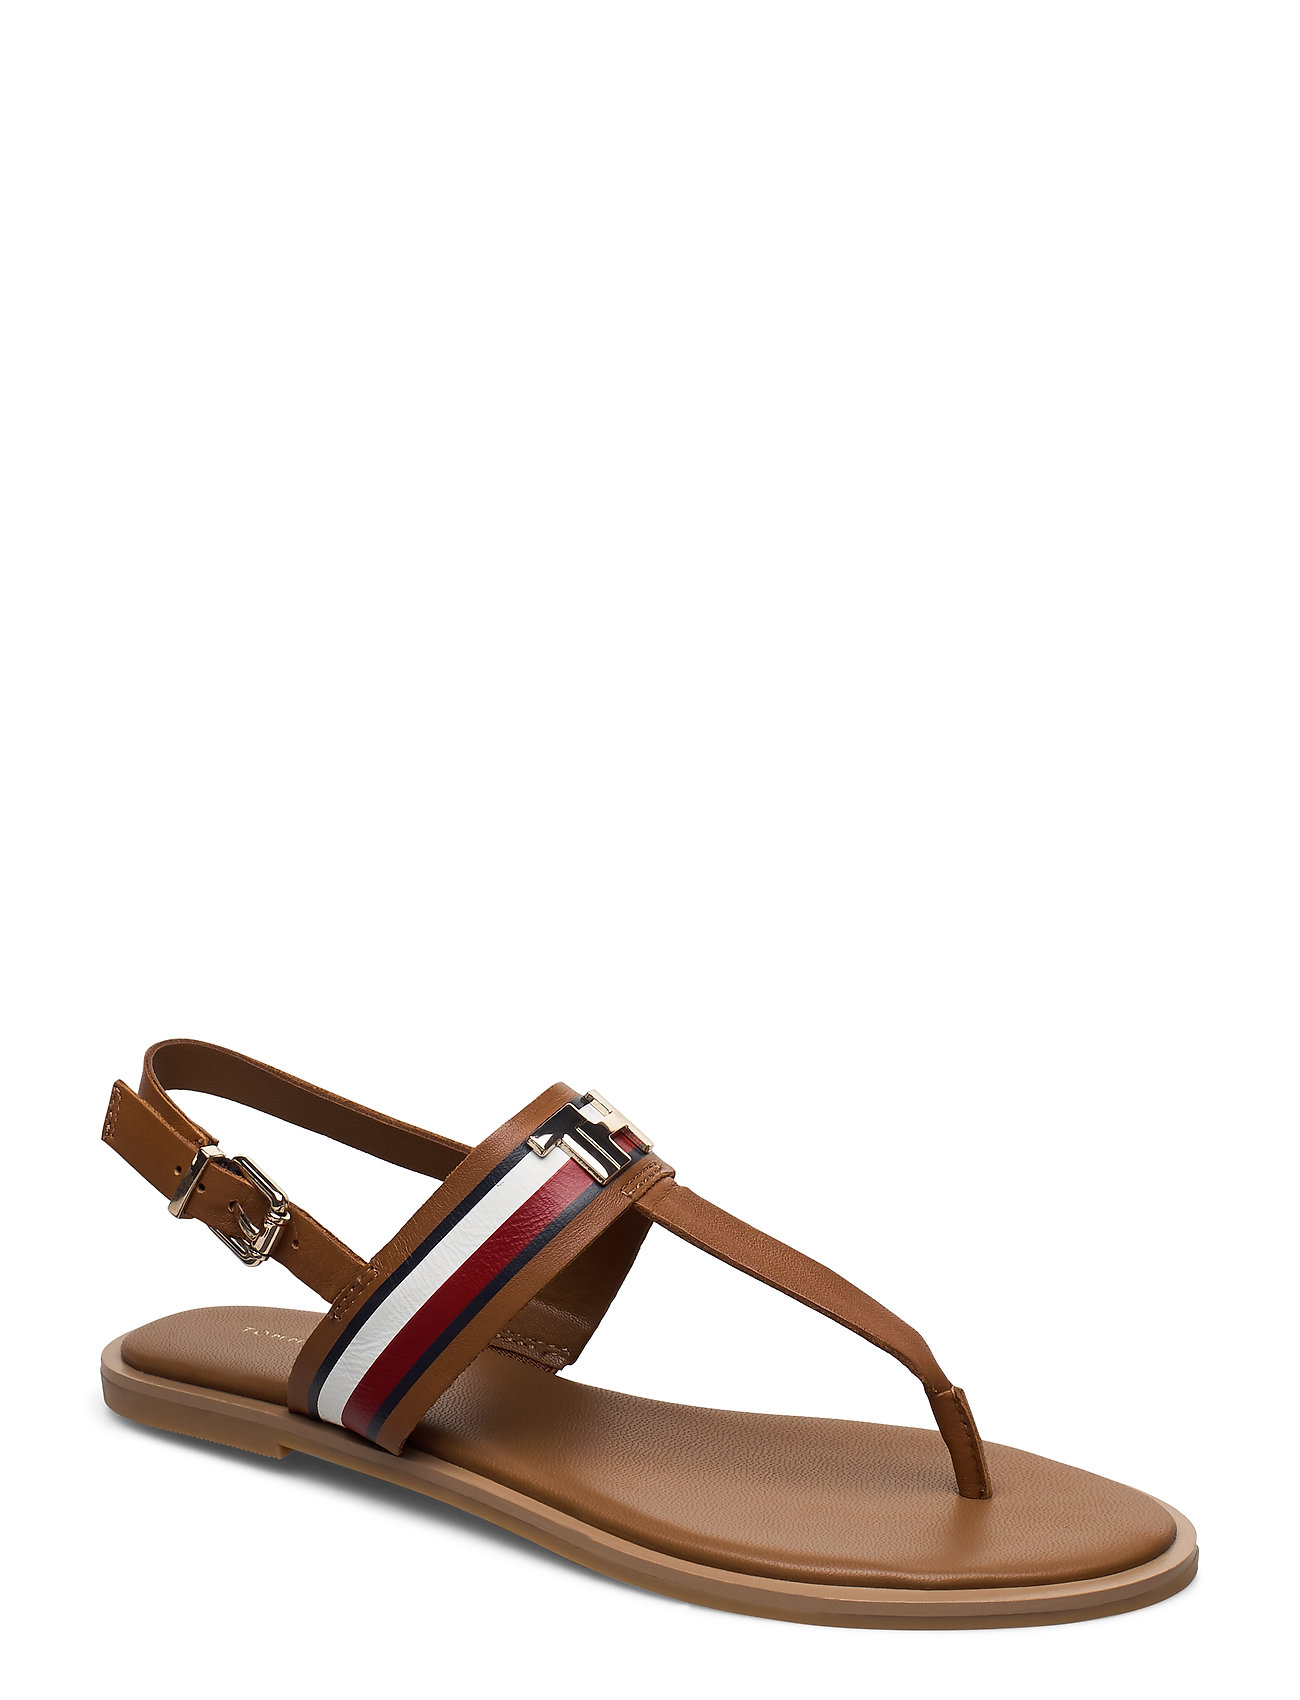 Image of Corporate Leather Flat Sandal Shoes Summer Shoes Flat Sandals Brun Tommy Hilfiger (3374724853)